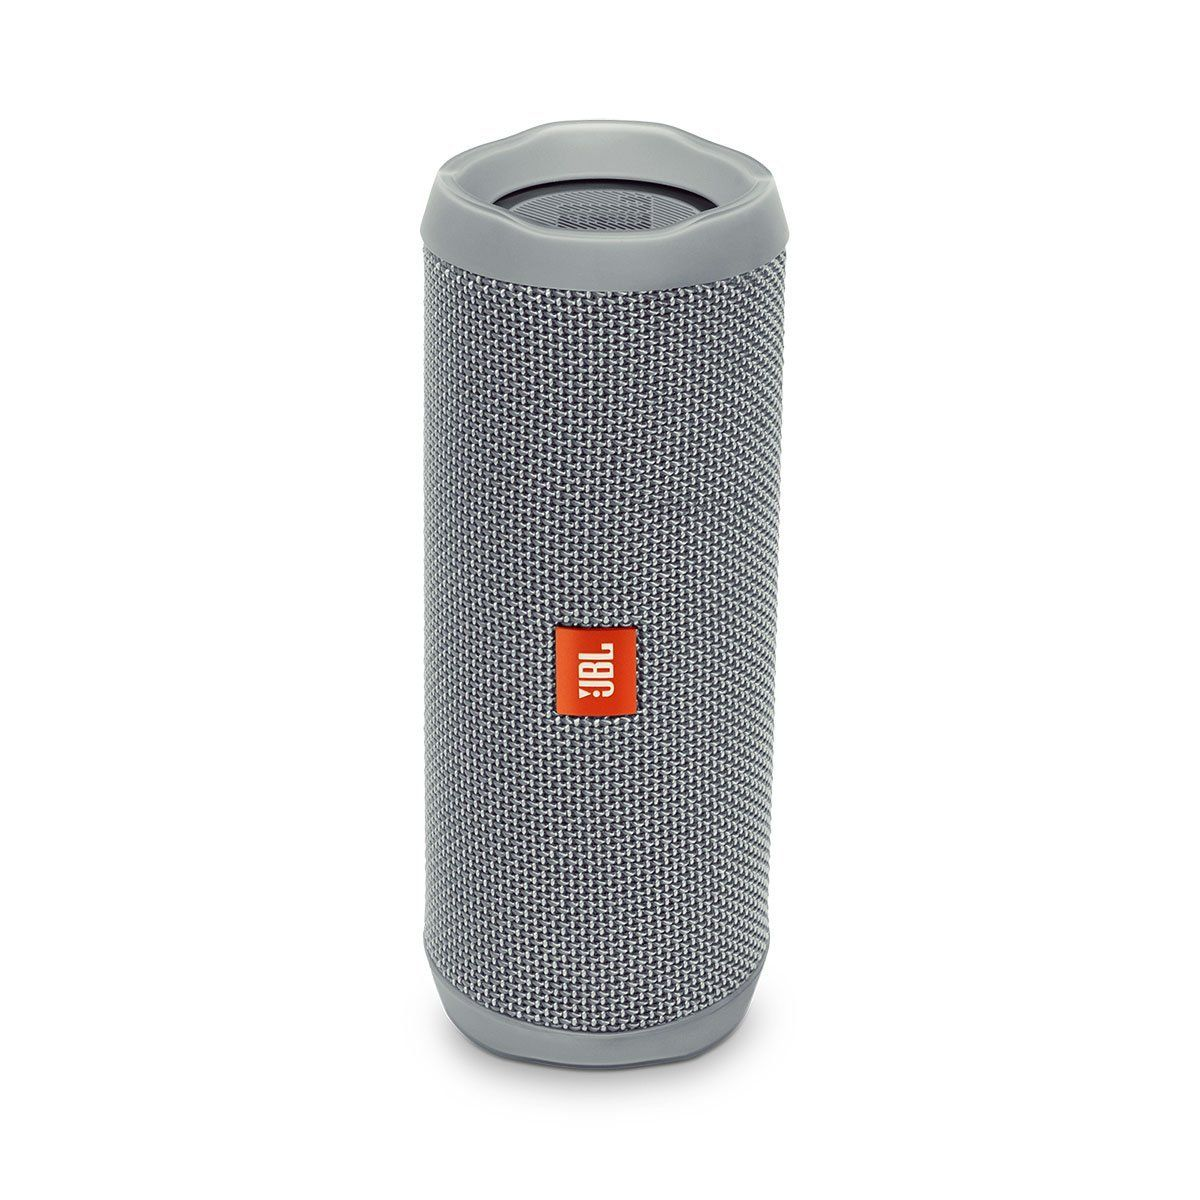 Salle De Bain Du Coteau Terrebonne ~ Jbl Flip 4 Waterproof Portable Bluetooth Speaker Black